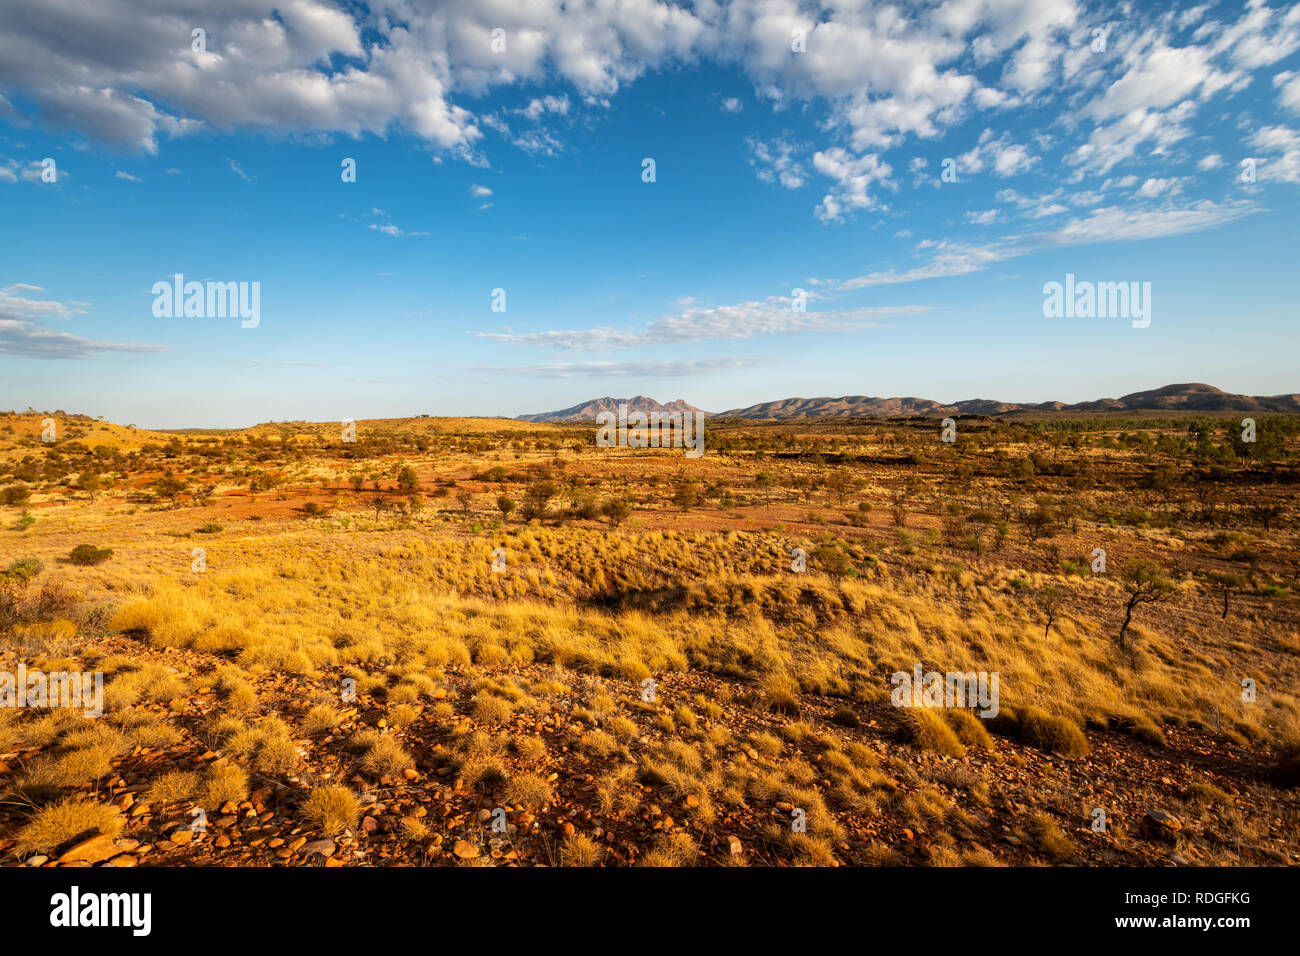 Typical scenery of the MacDonnell Ranges. - Stock Image